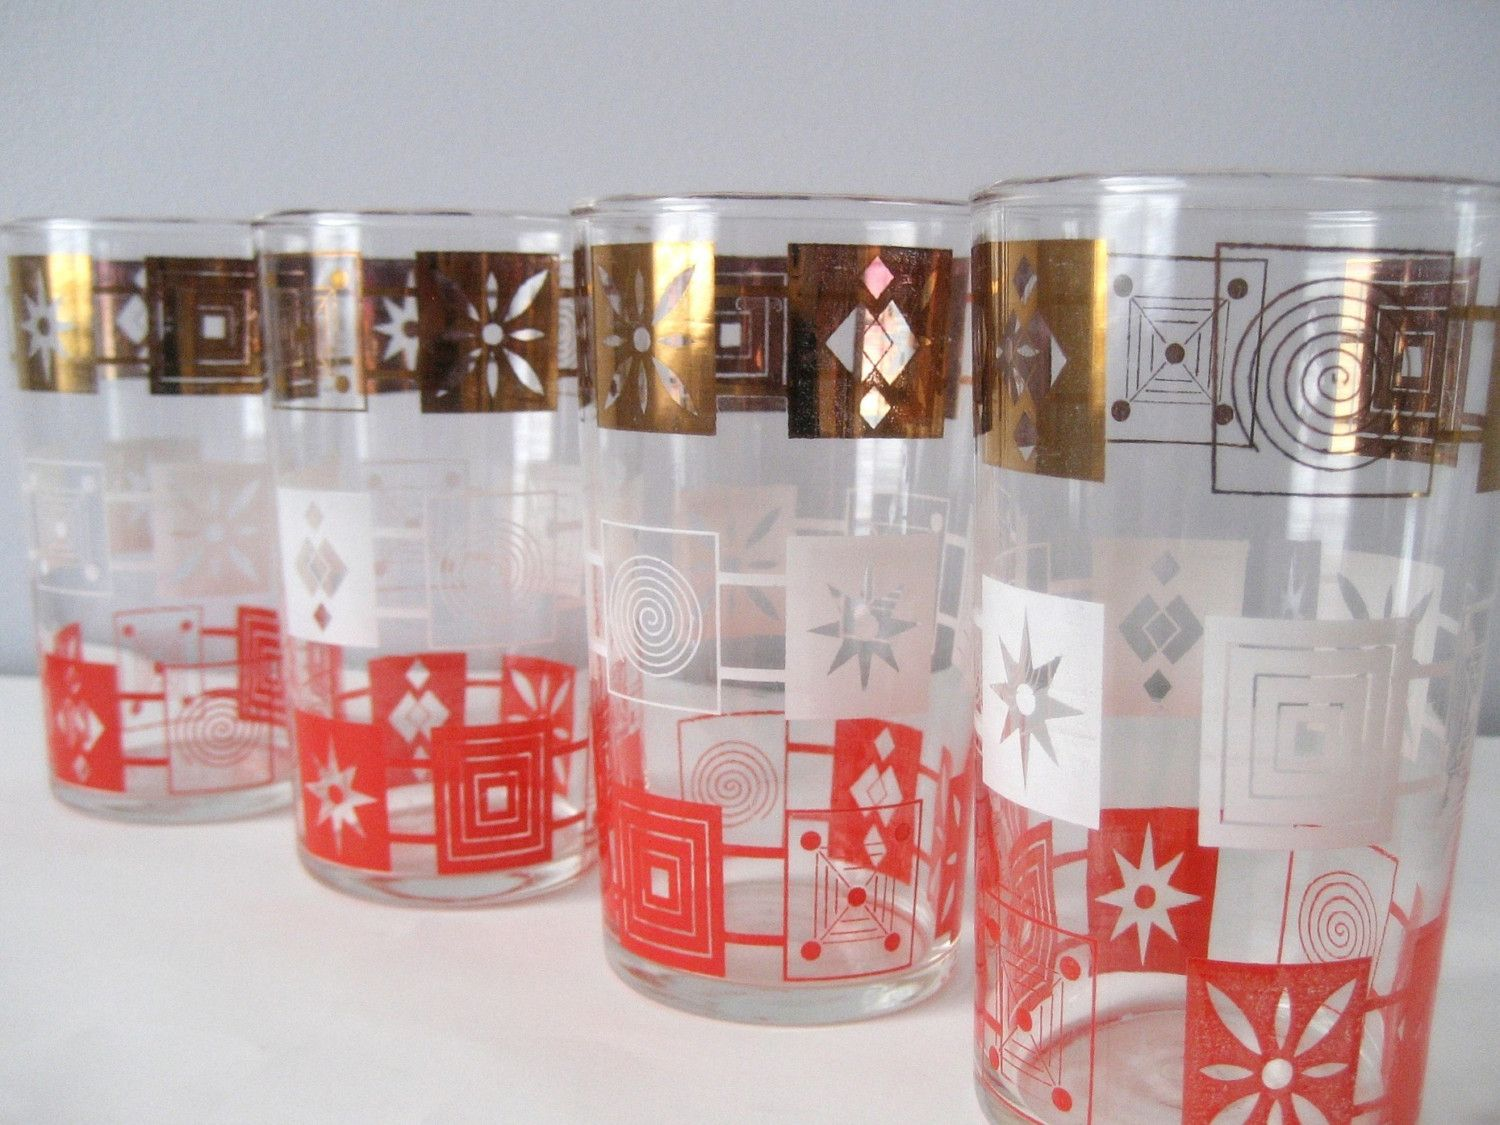 Vintage 1950s 50s Kitsch Kitschy Drinkware Drinking Glasses Cups Set of 4. $20.00, via Etsy.